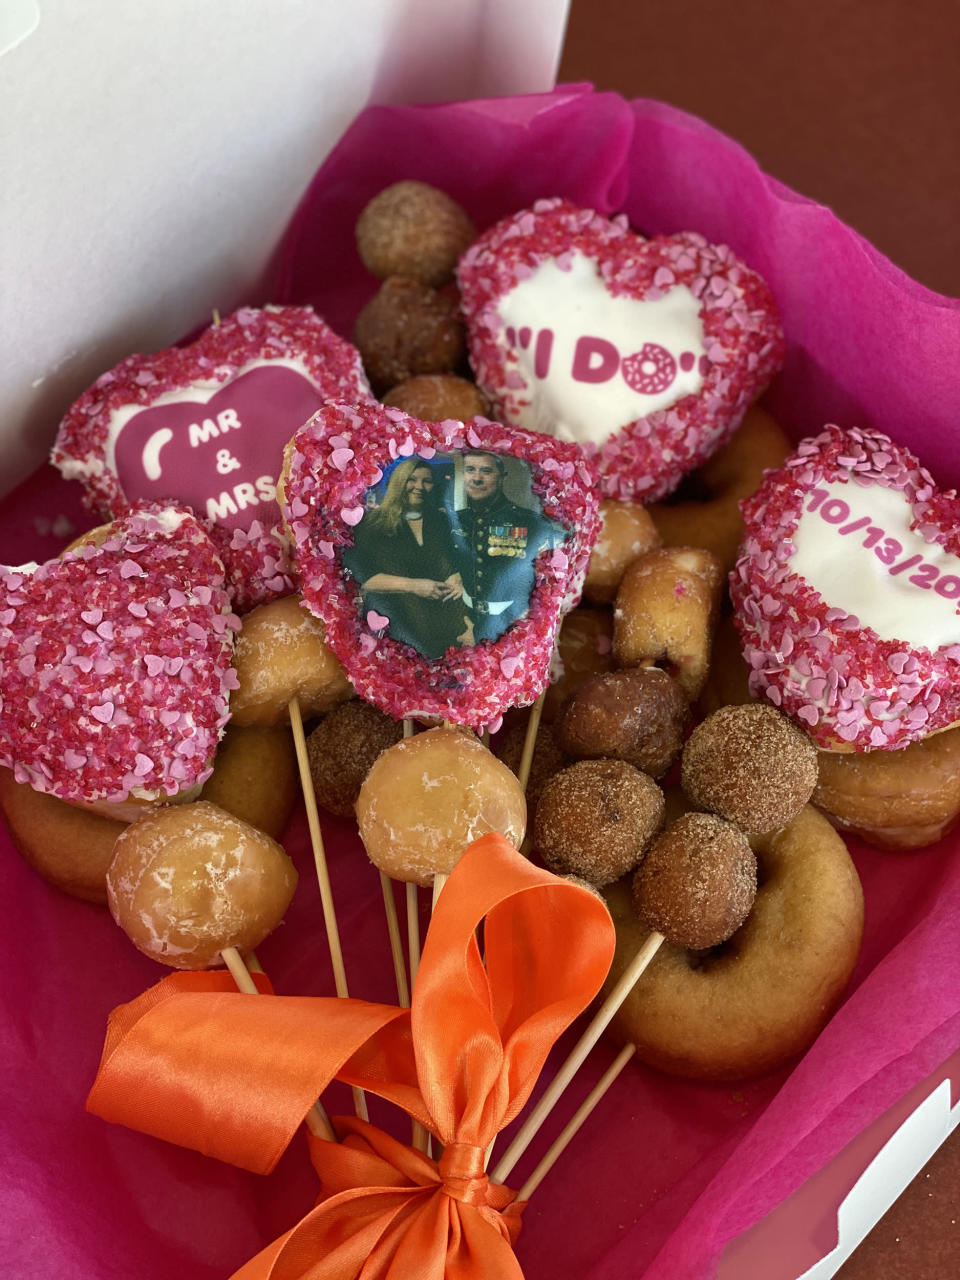 What wedding at Dunkin' wouldn't be complete with doughnuts? (Courtesy Jillian Gallagher and Emma Burke)